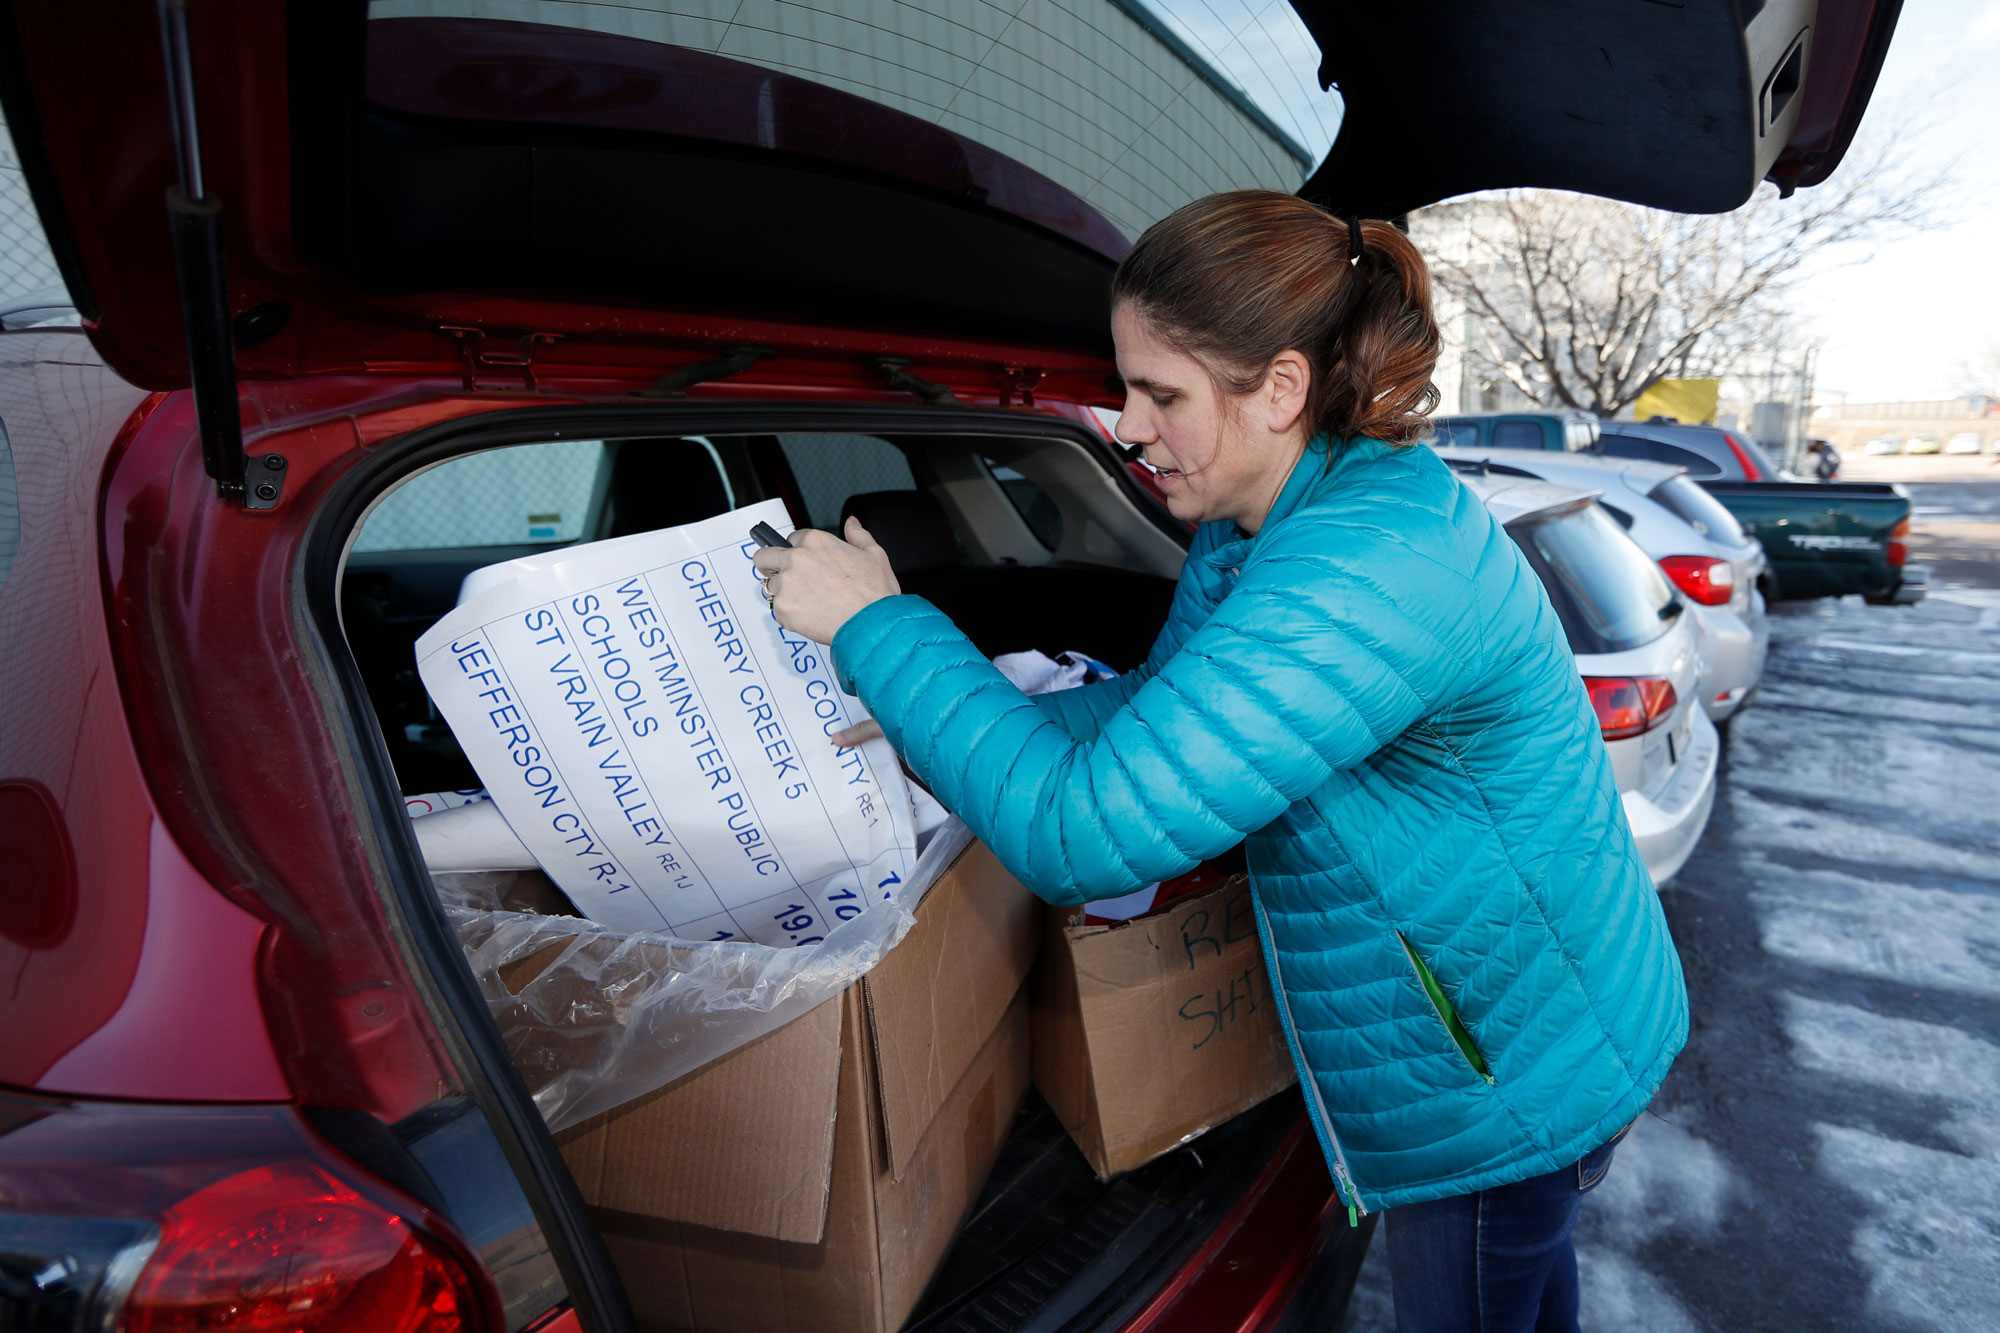 <p>In this Thursday, Jan. 17, 2019, photograph, Kate Martin, a former teacher and current employee of the Denver Classroom Teachers Association, unloads items for a potential teachers' strike outside the union's headquarters in south Denver.</p>